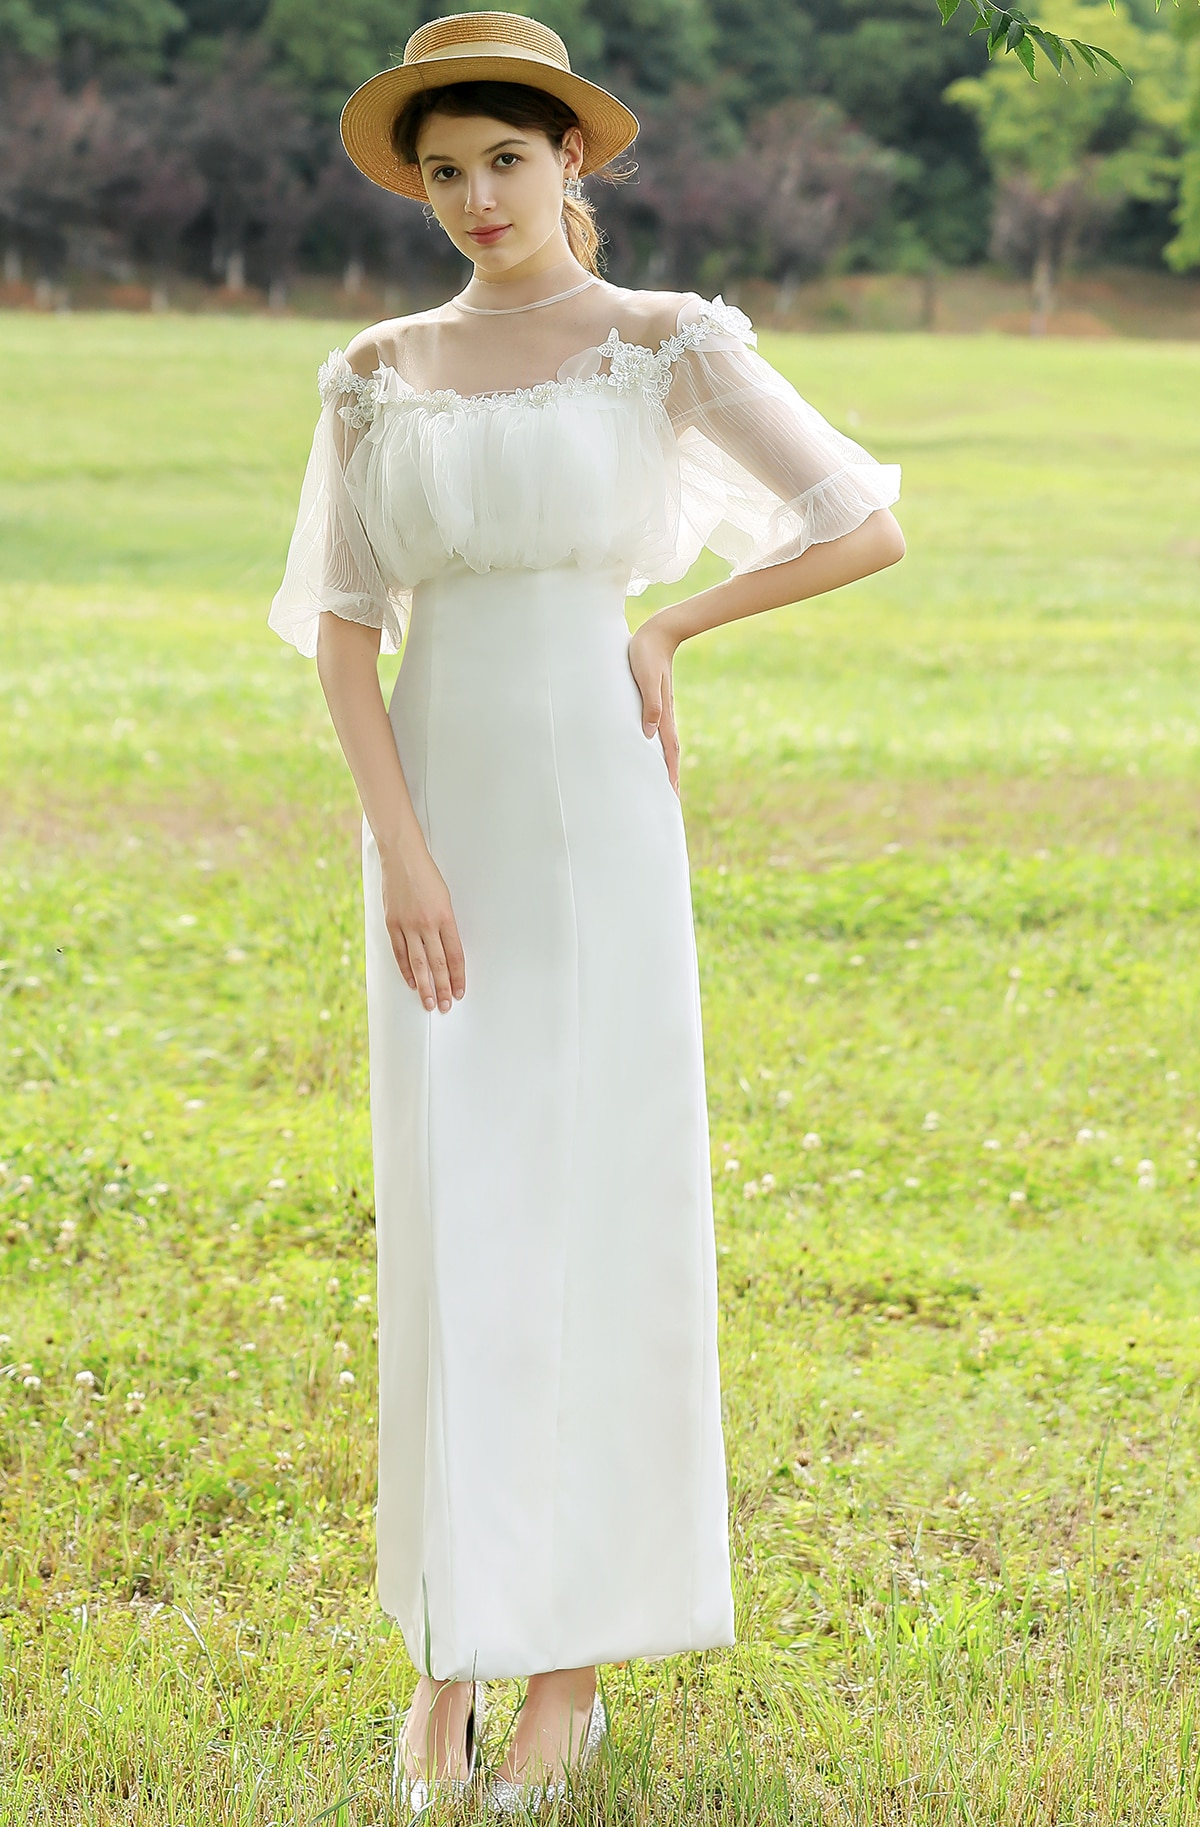 Get Puff Sleeve Sheath Wedding Bridal Gown Satin Women Chic Empire Illusion Neckline Ankle Length 2021 Spring New Arrival 2995#